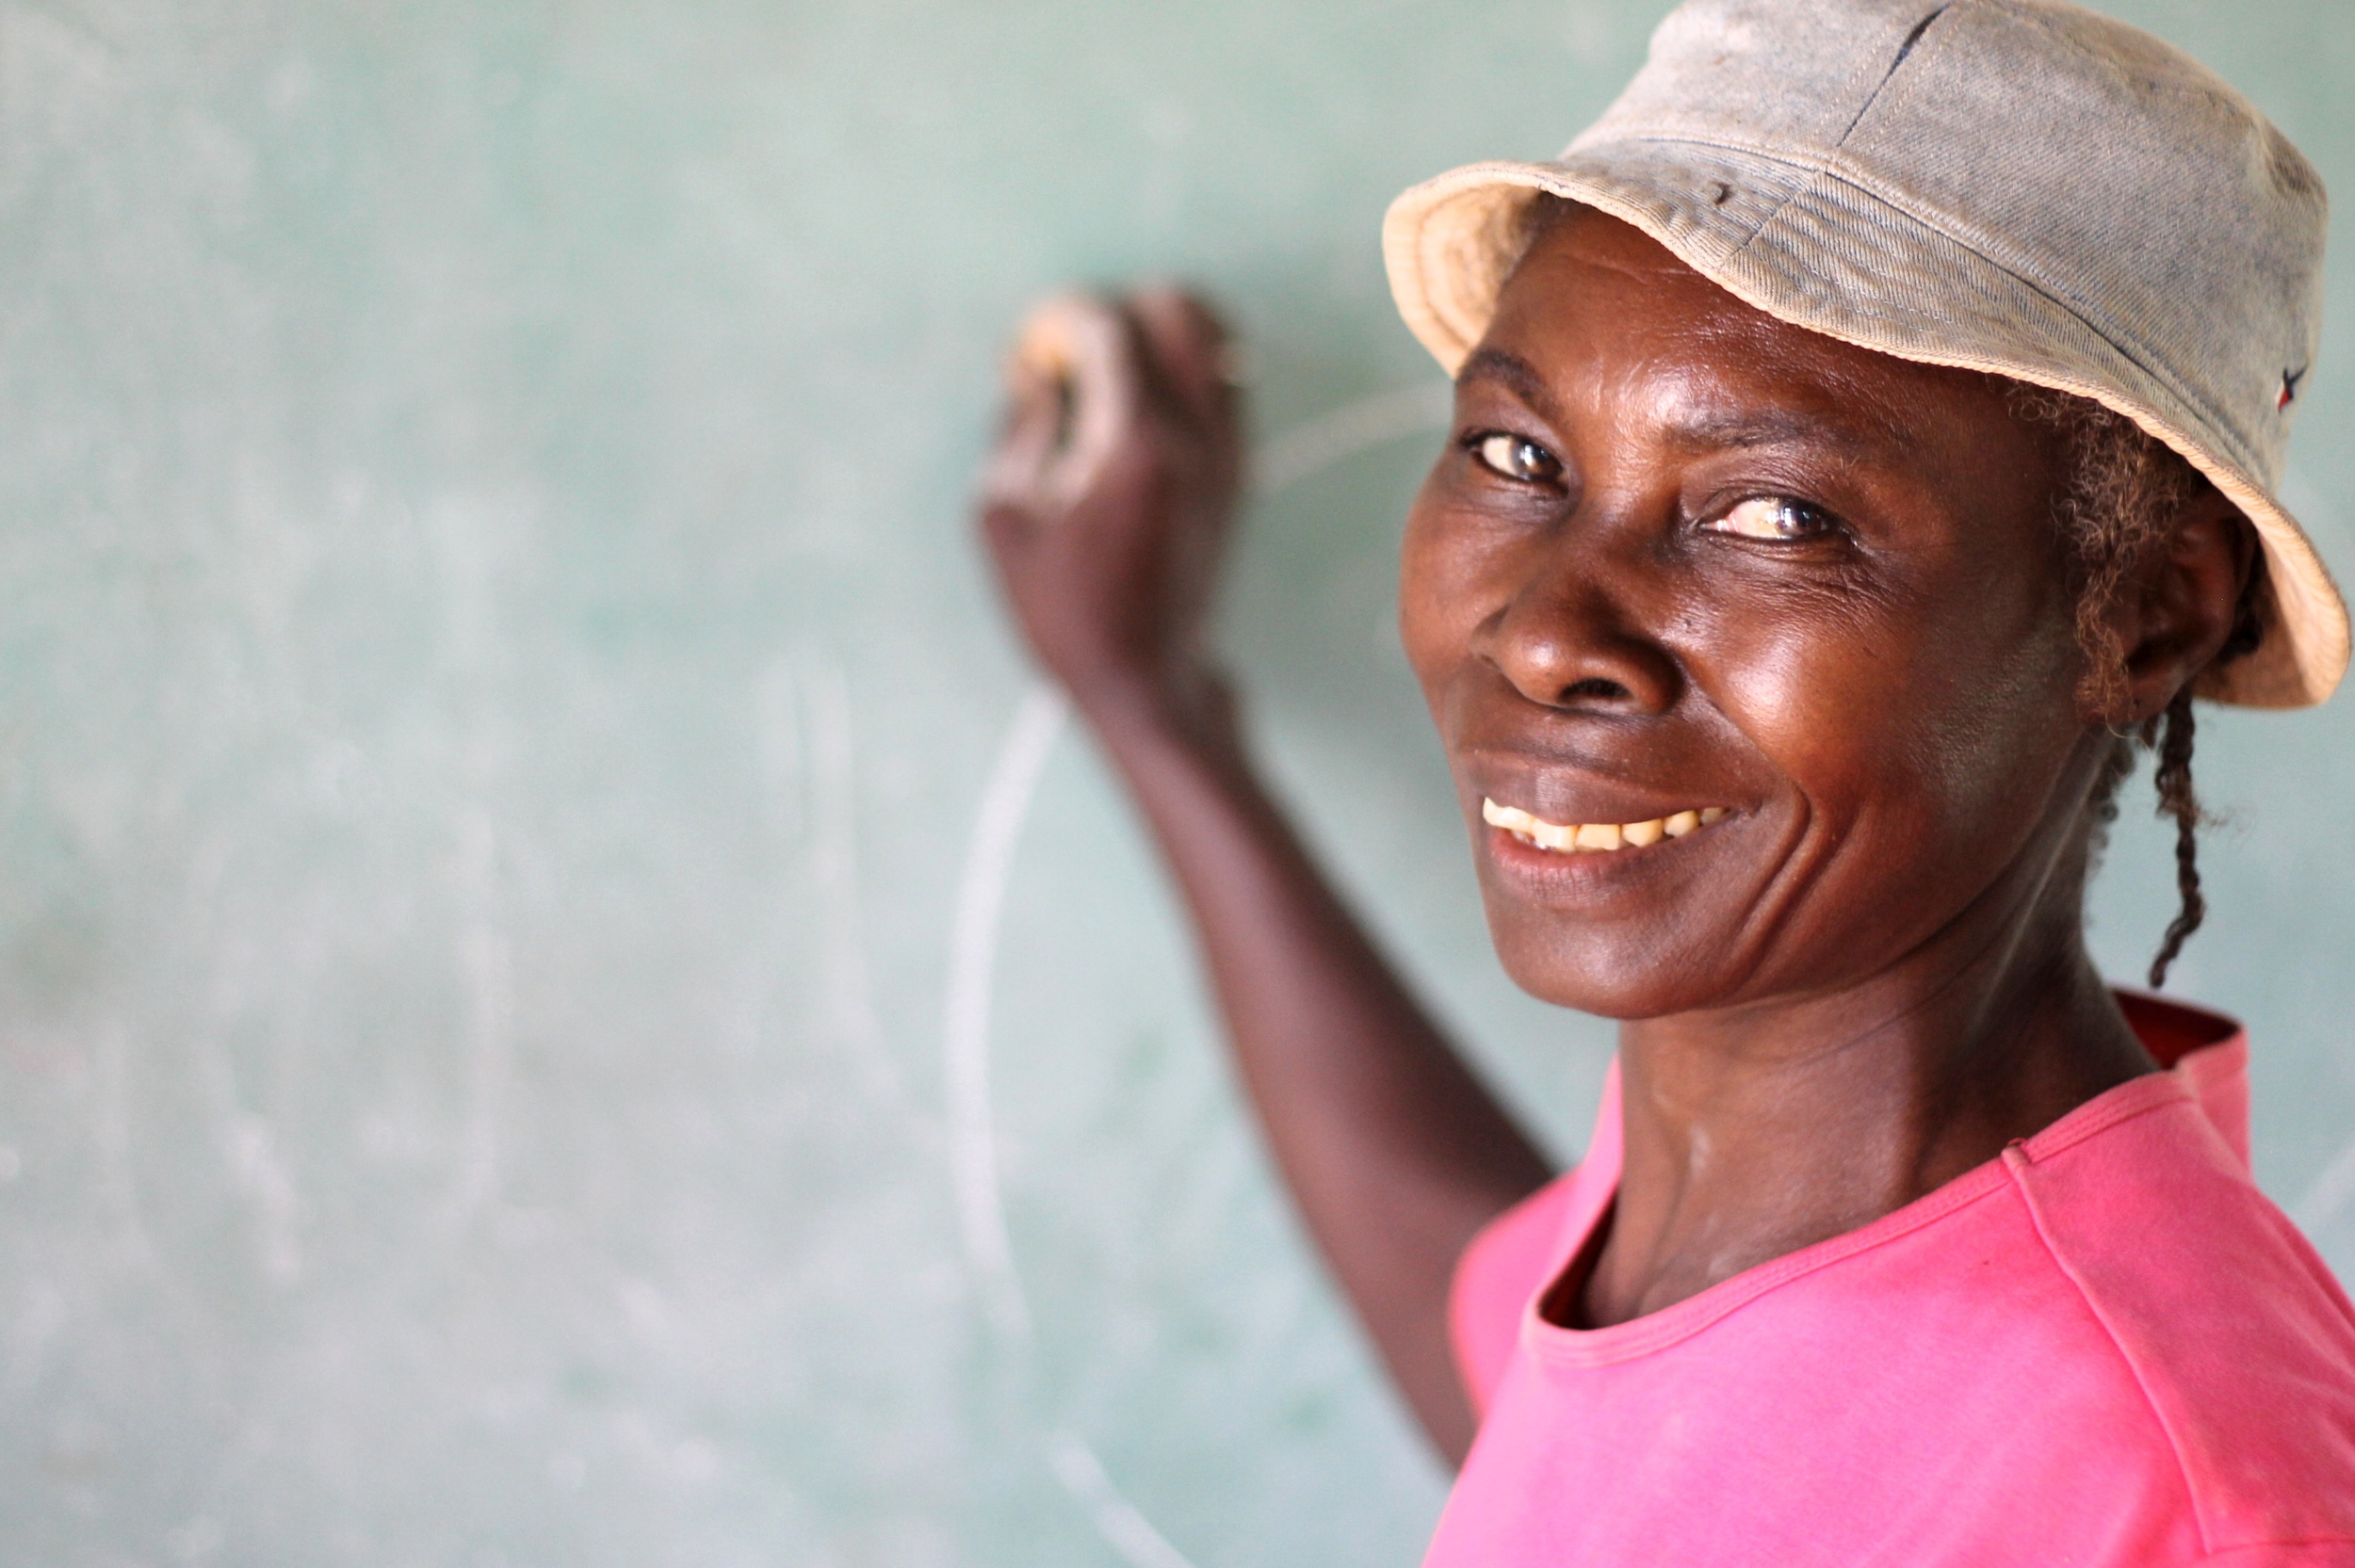 Verose, age 48, is attending school for the first time.